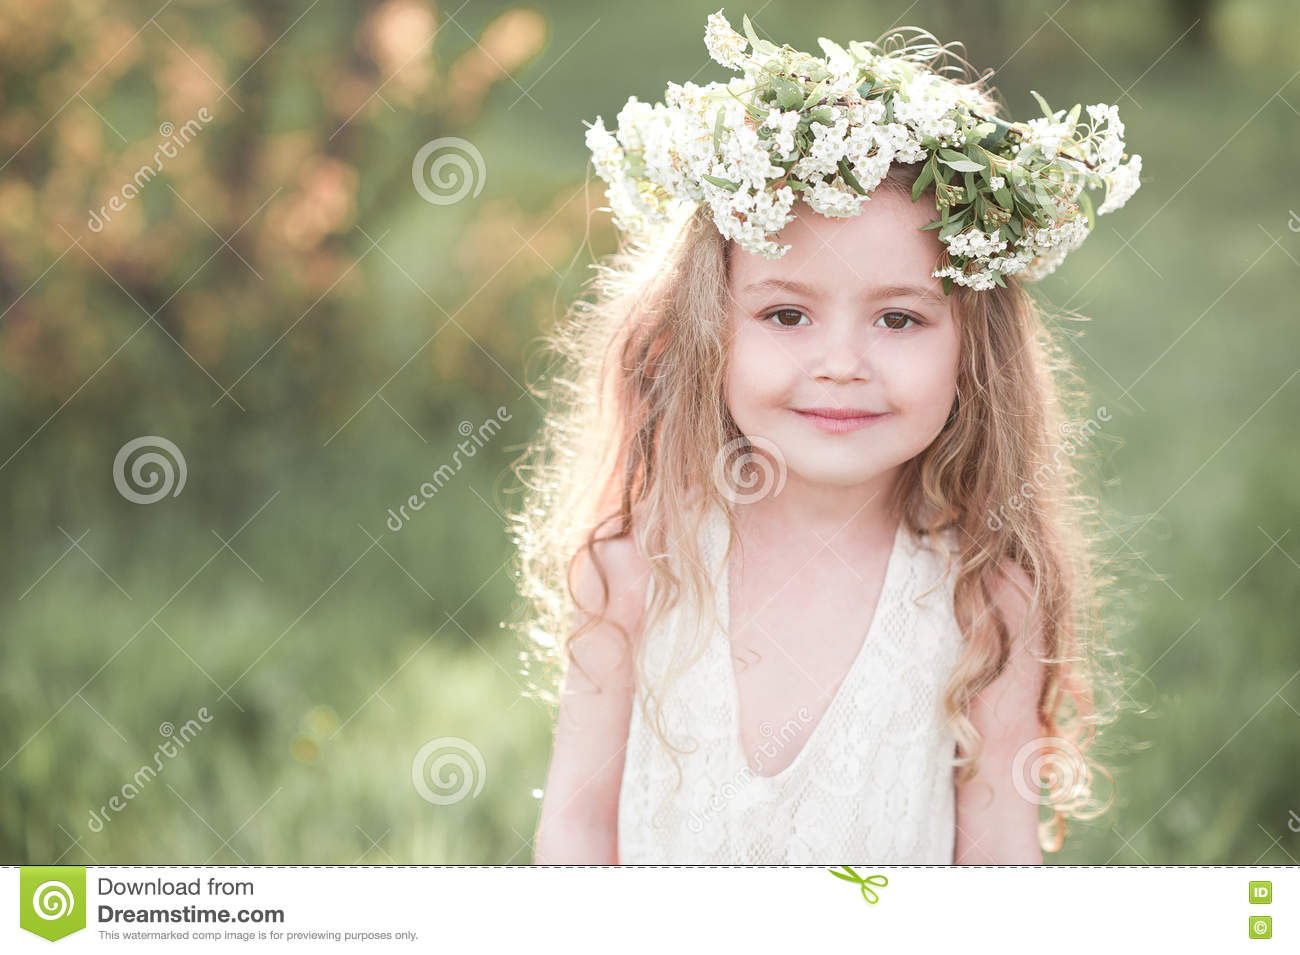 Beautiful baby girl posing outdoors over nature background